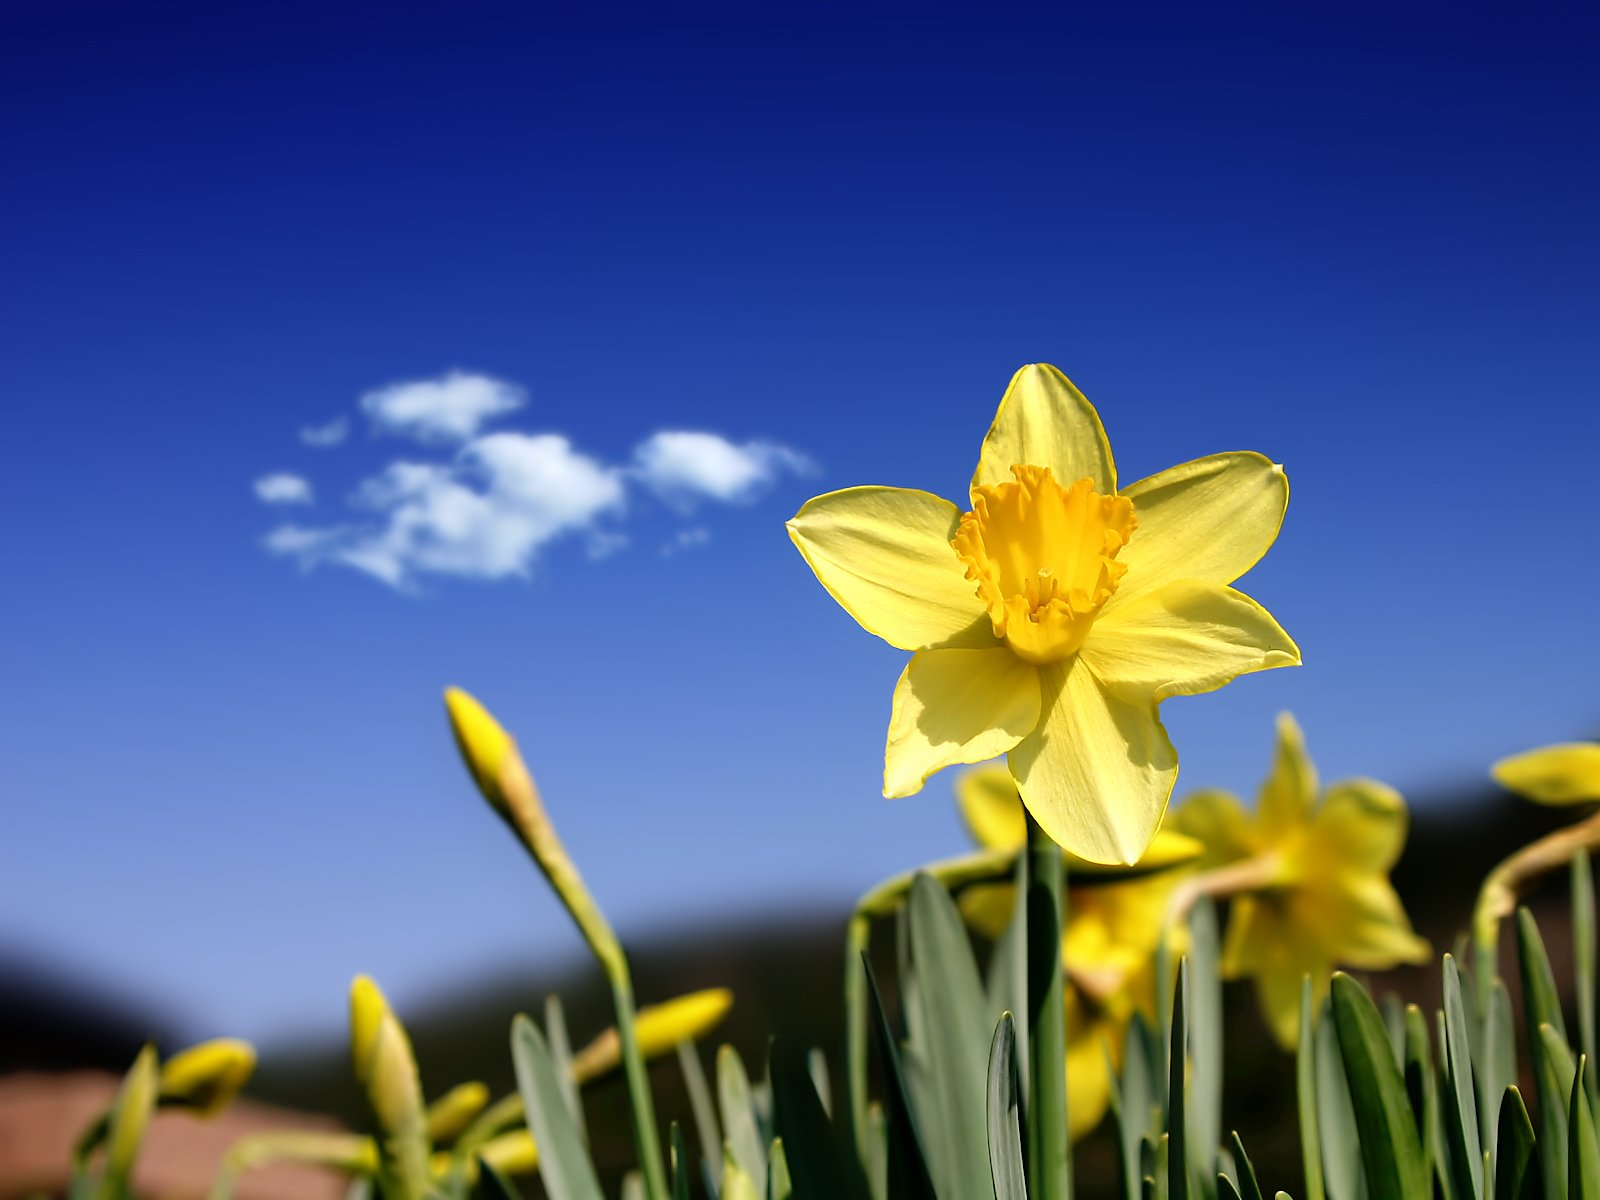 1600x1200 Beautiful daffodils desktop PC and Mac wallpaper 1600x1200